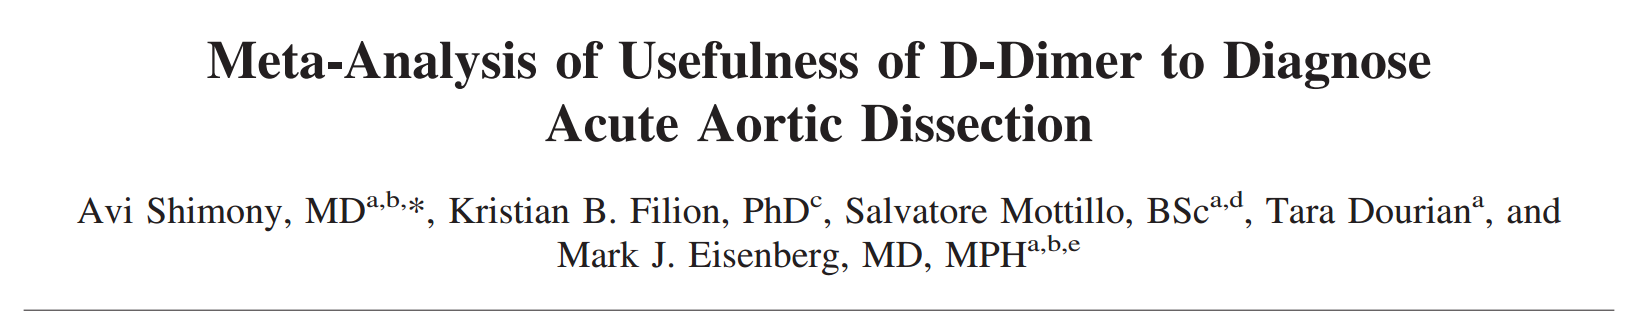 Shimony2014-ddimer_aorticDissection